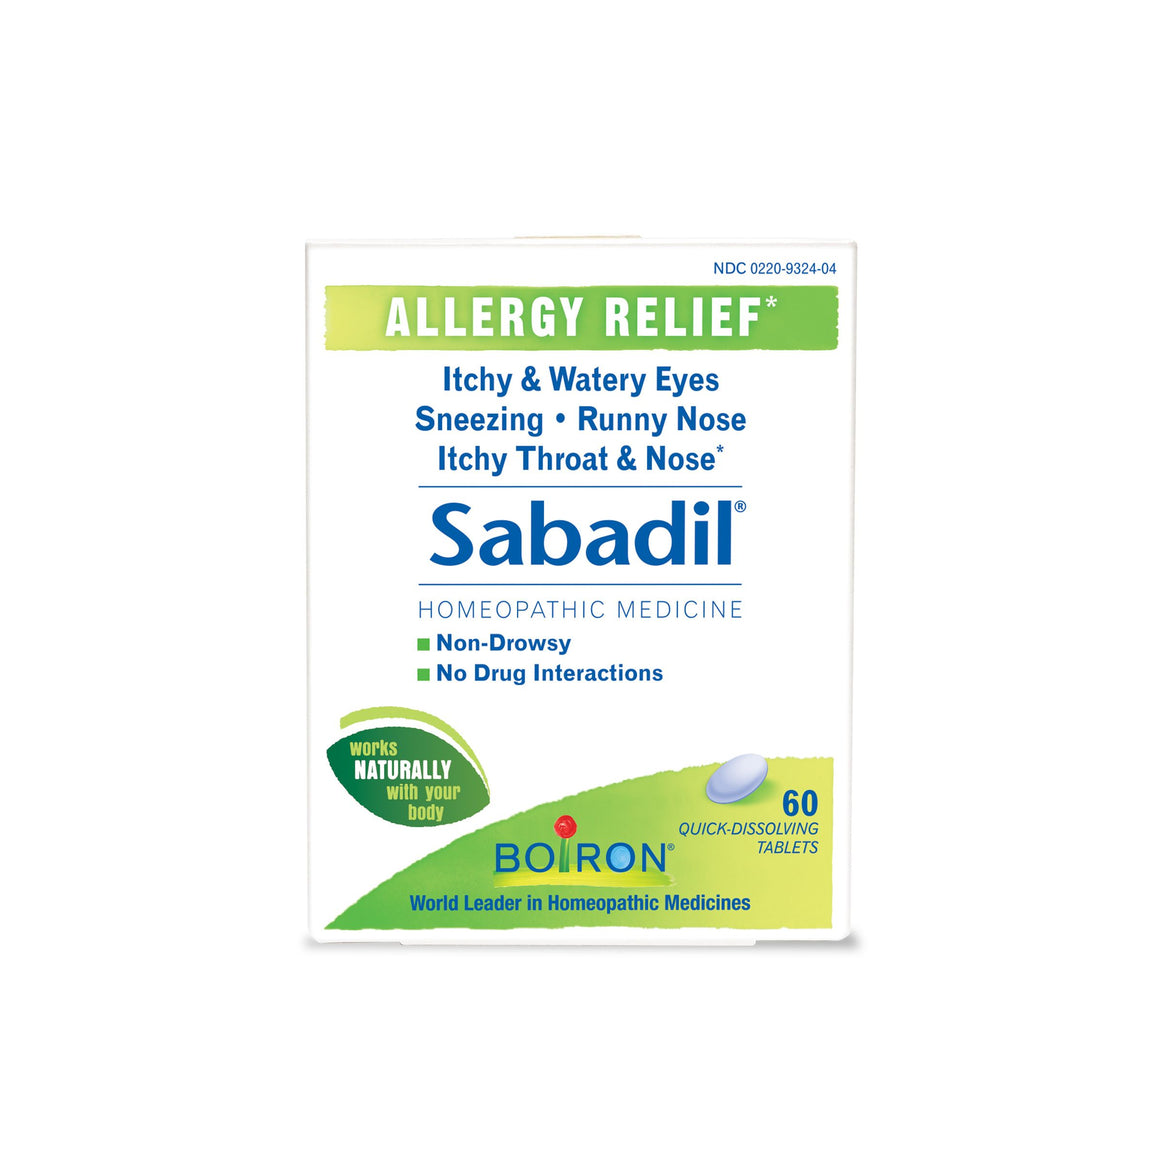 A package of Boiron Sabadil®